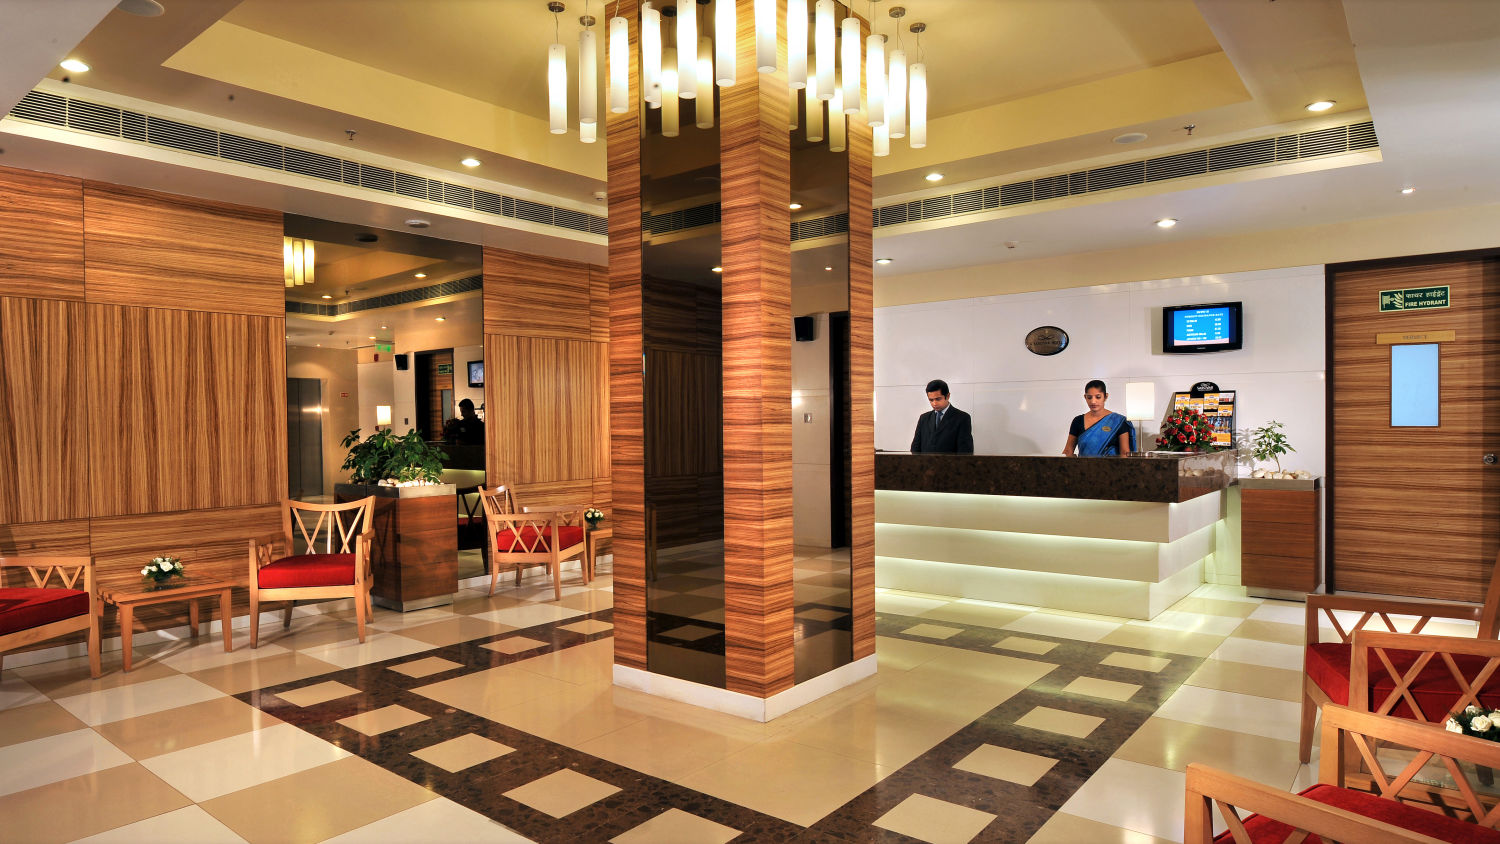 Lobby Hometel Chandigarh 2, best hotels in chandigarh, business hotel in chandigarh